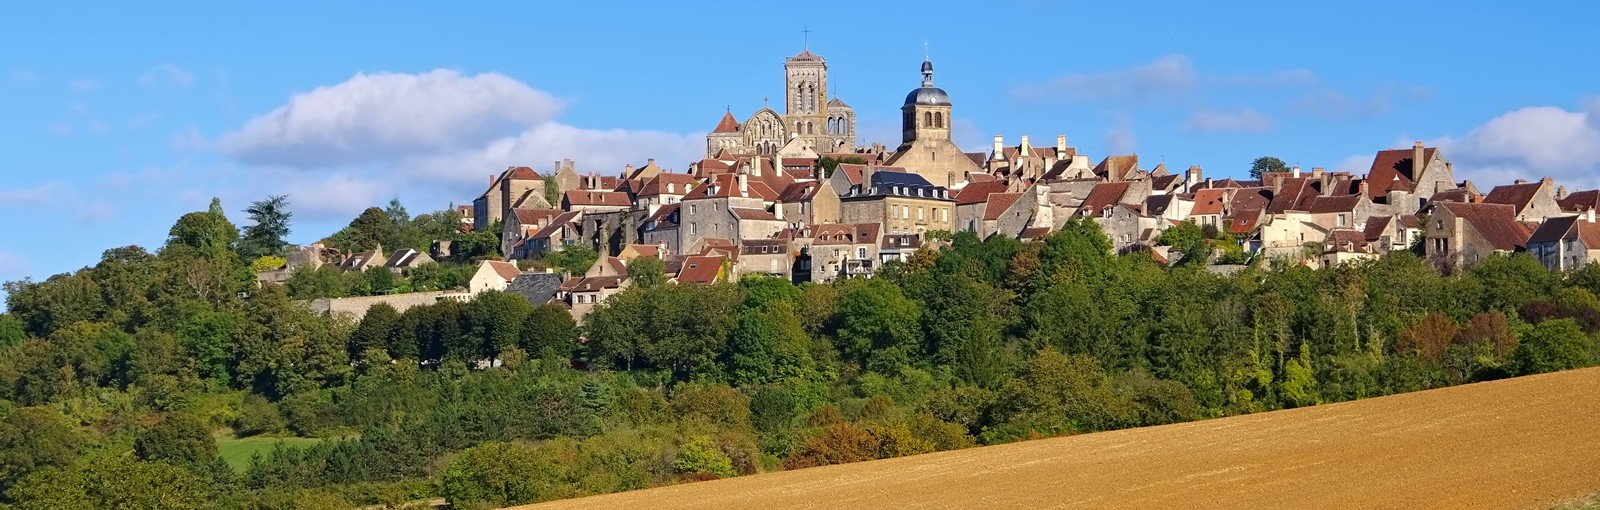 Tours Champagne - Burgundy – Berry - Multi-regional - Multiday tours from Paris